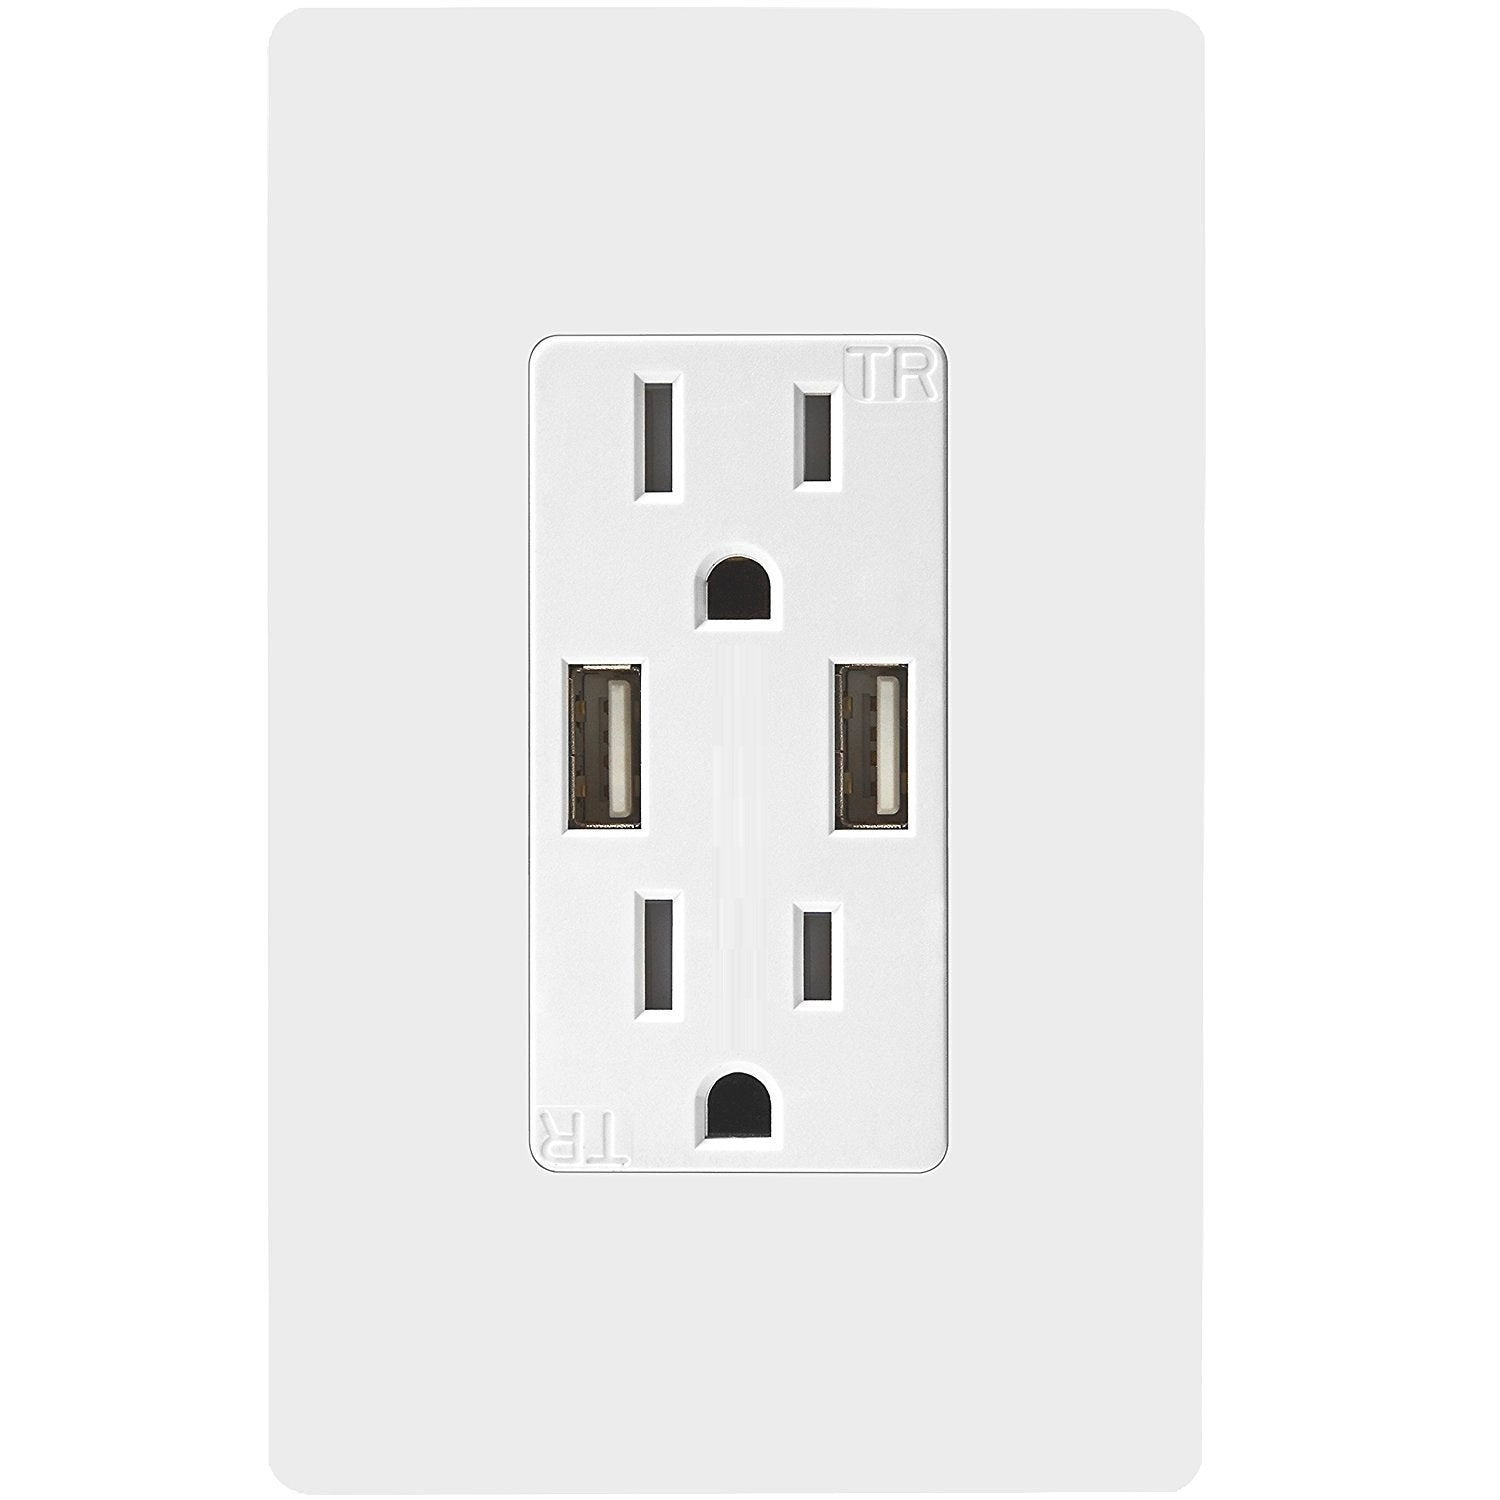 Digitalhome Design: SK100 Wall Socket With Fast Charging USB Digitalhome .ph